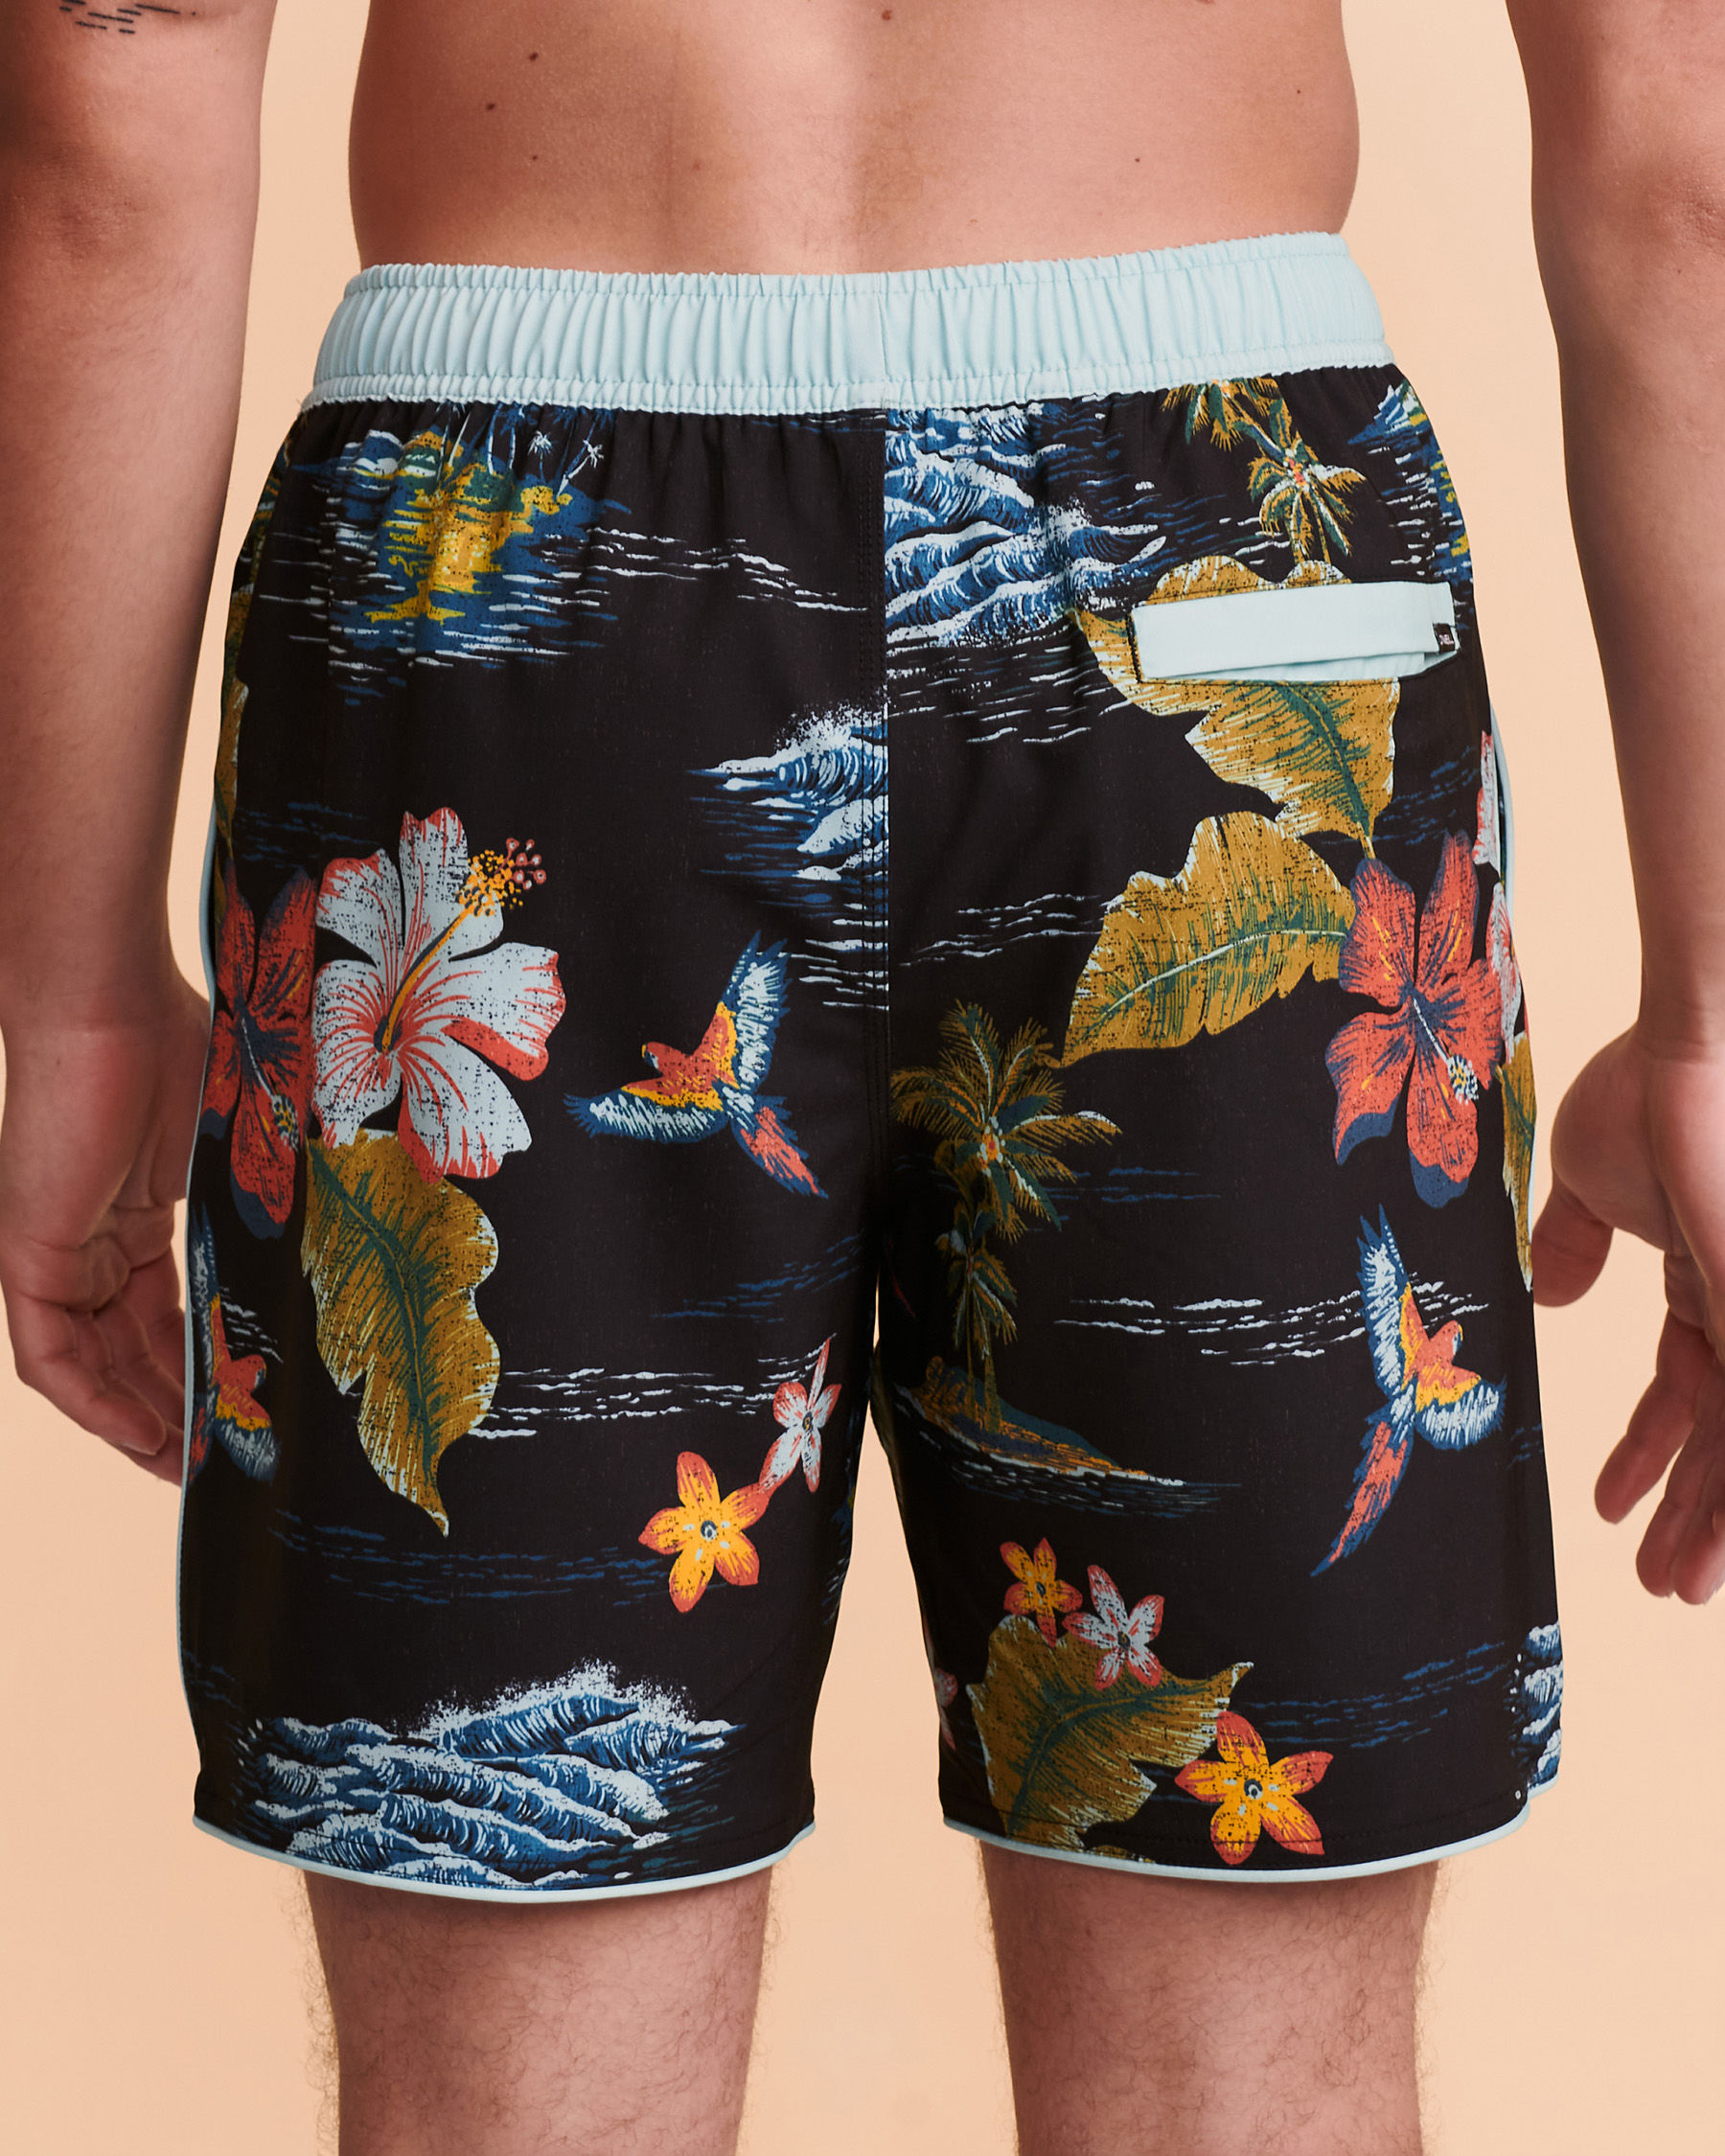 O'NEILL EXCHANGE Volley Swimsuit Tropical print SP1106018 - View3